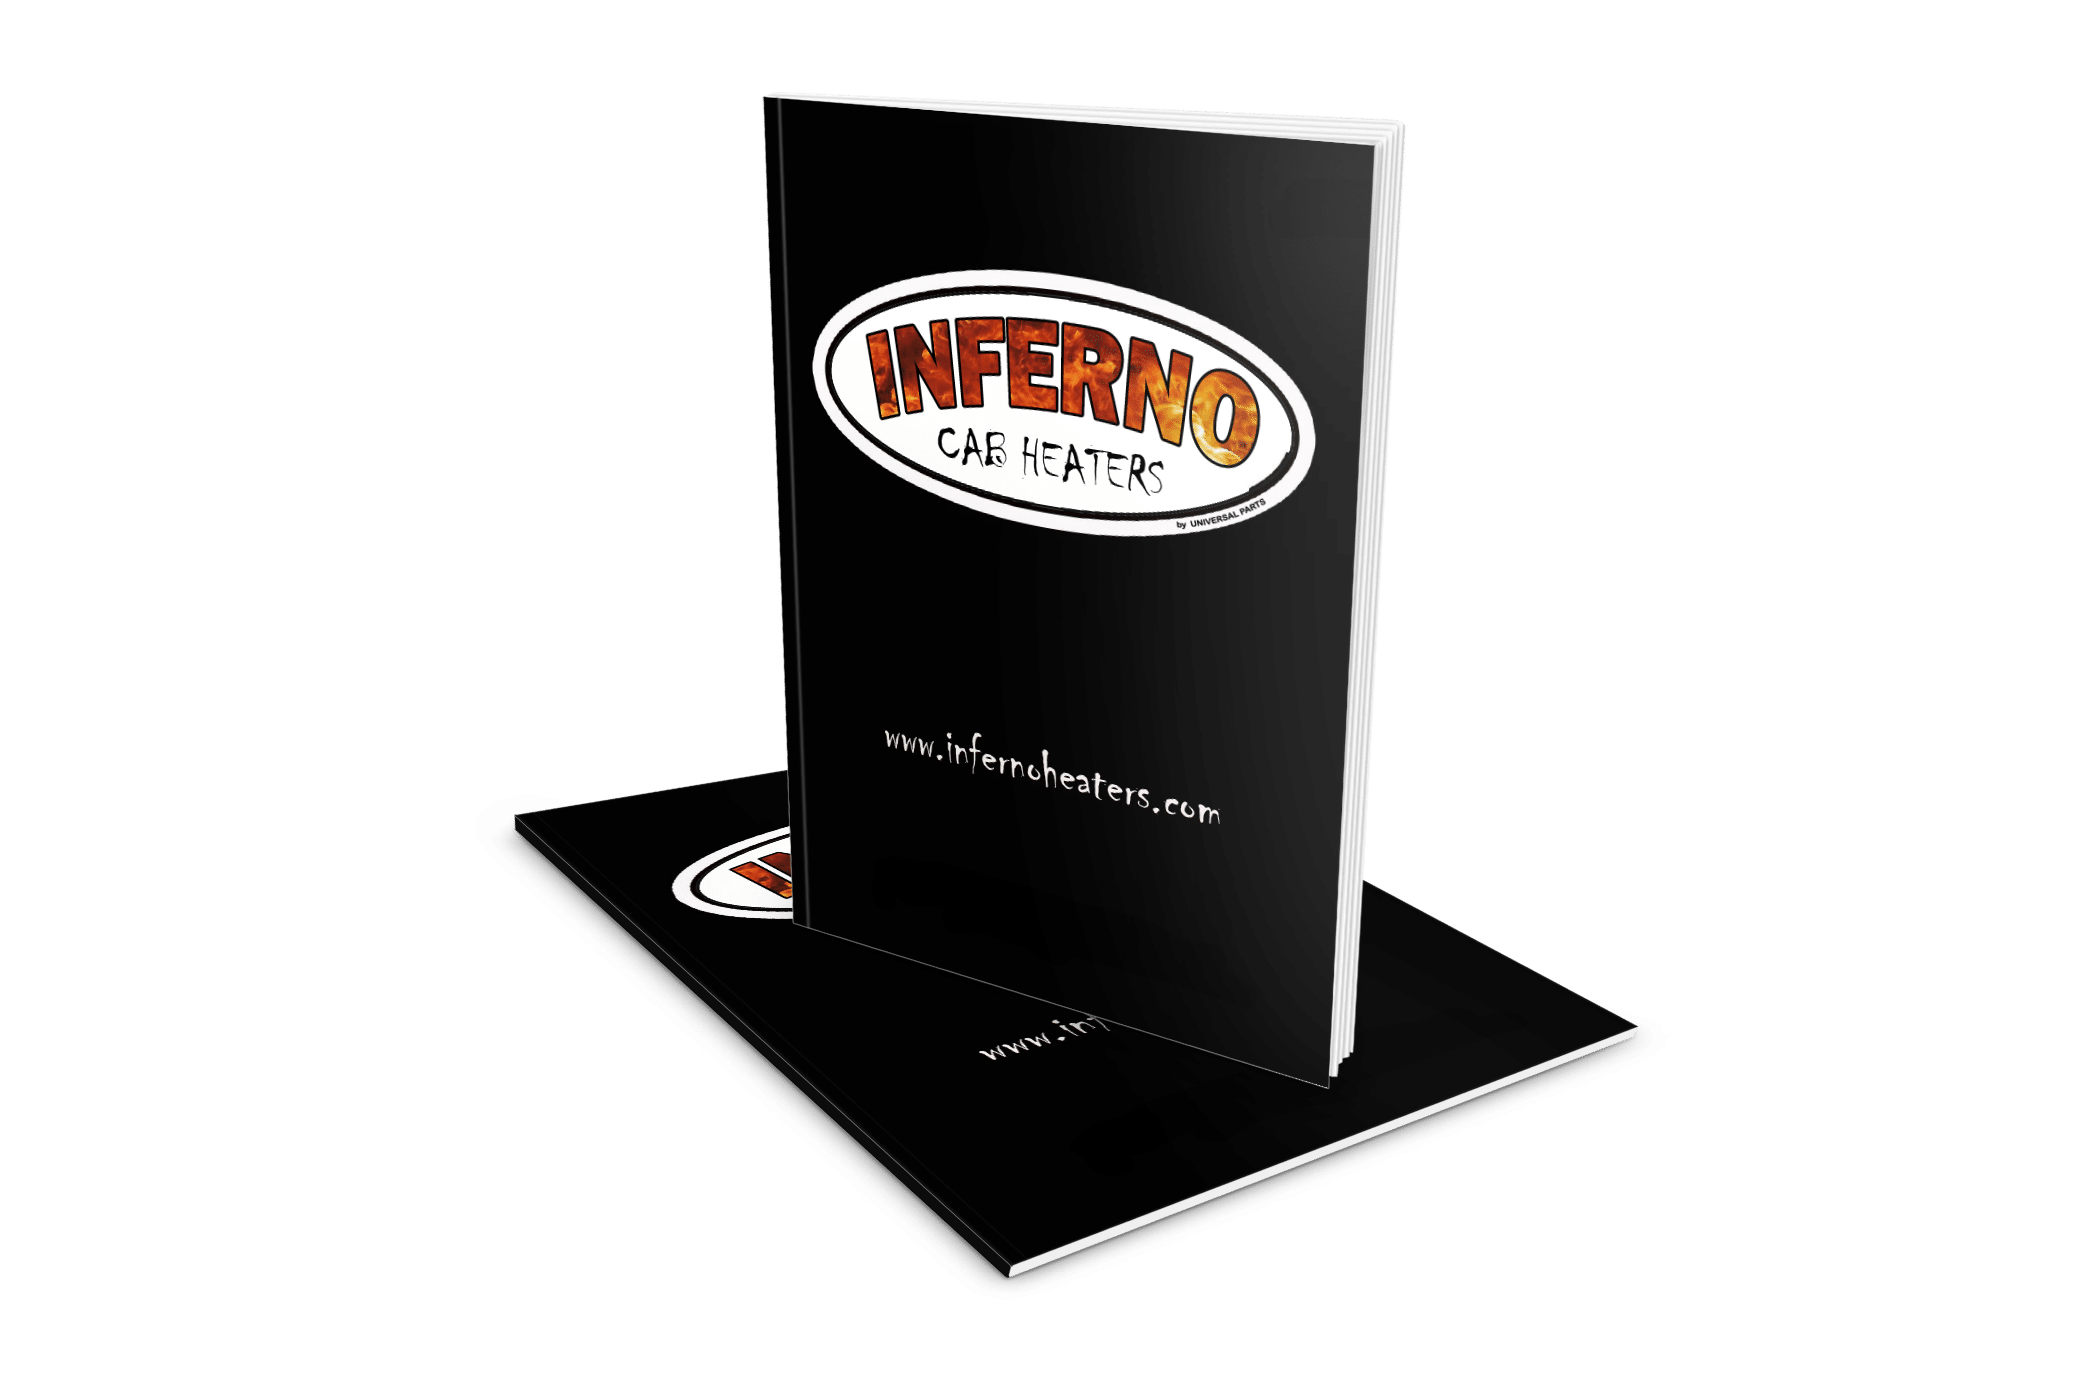 Download the Inferno Cab Heaters Catalog - PDF